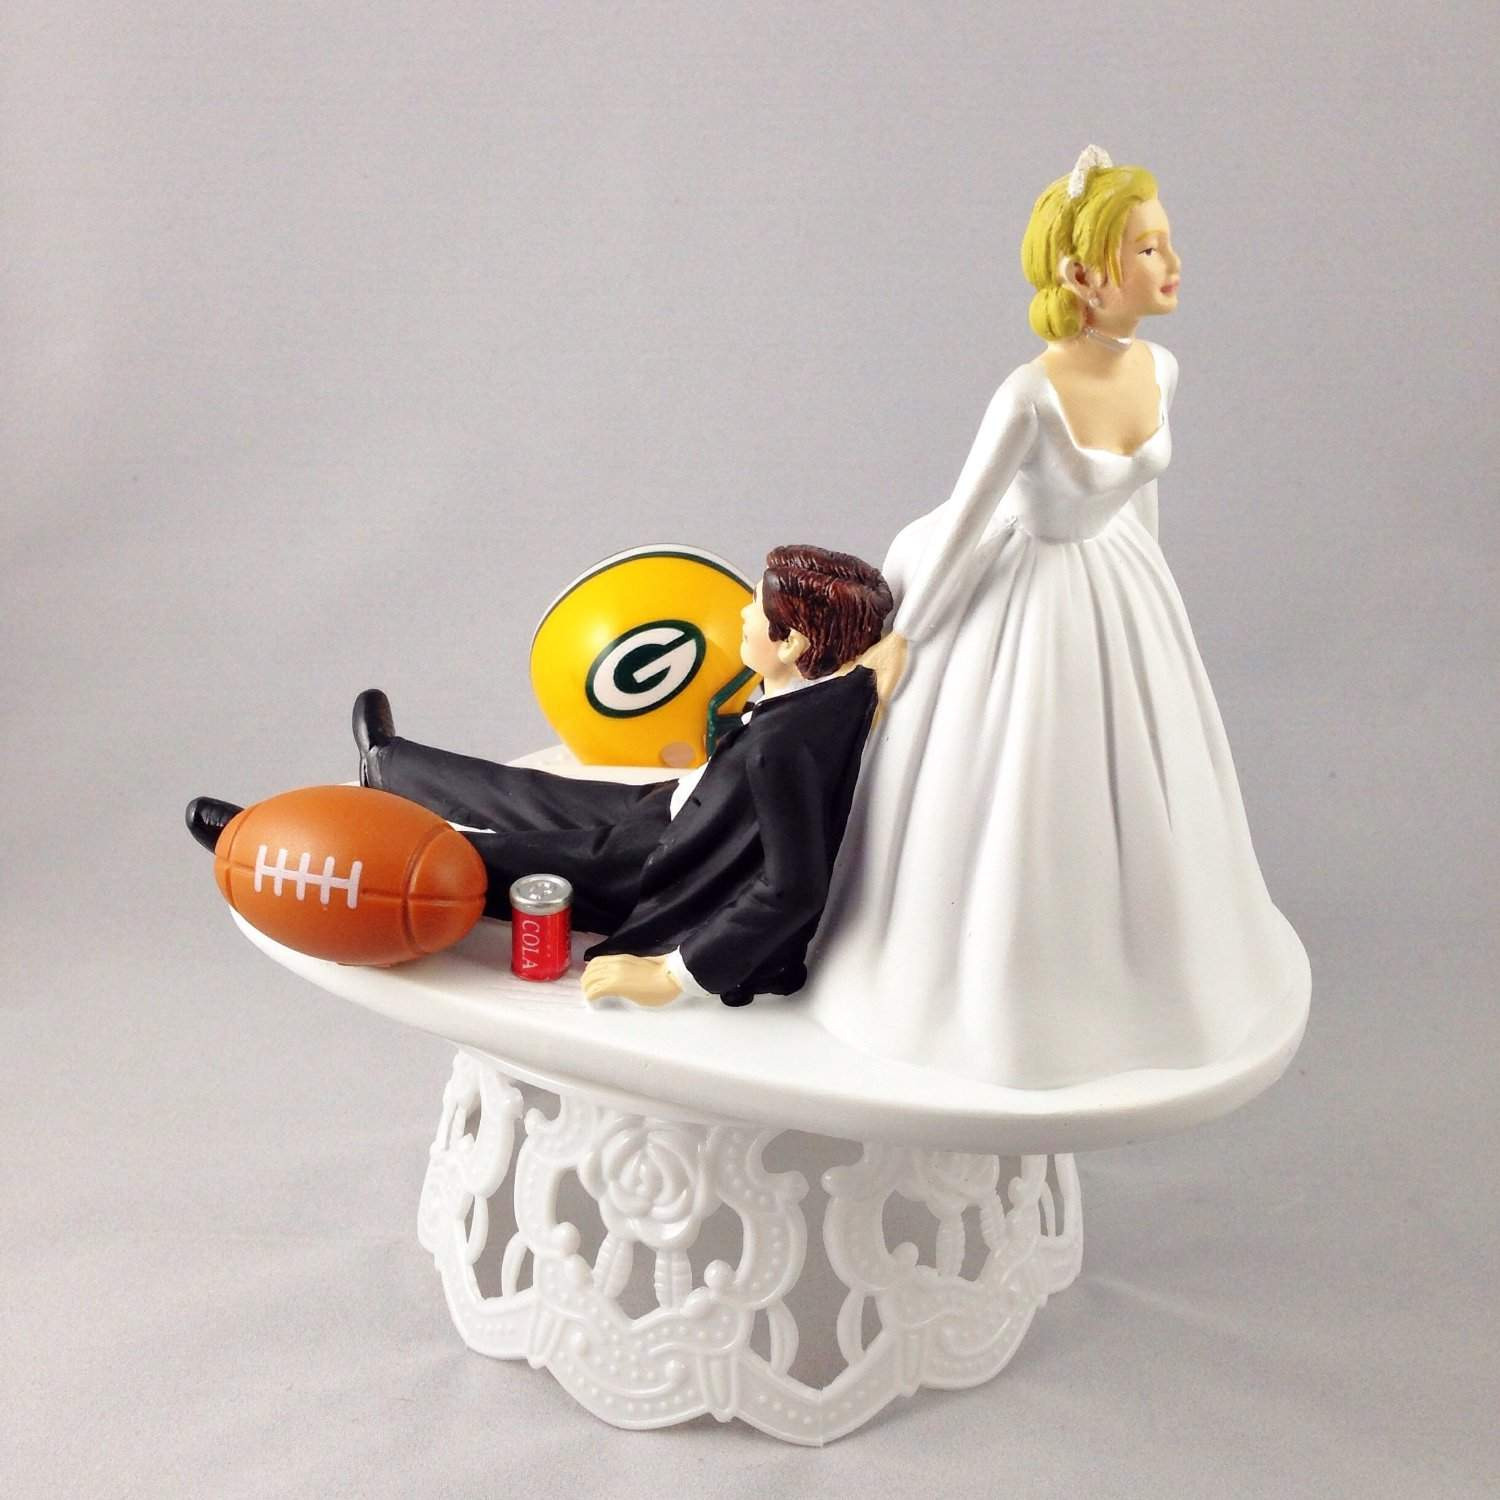 Funny Cake Toppers For Wedding Cakes  Top 10 Best Funny Wedding Cake Toppers